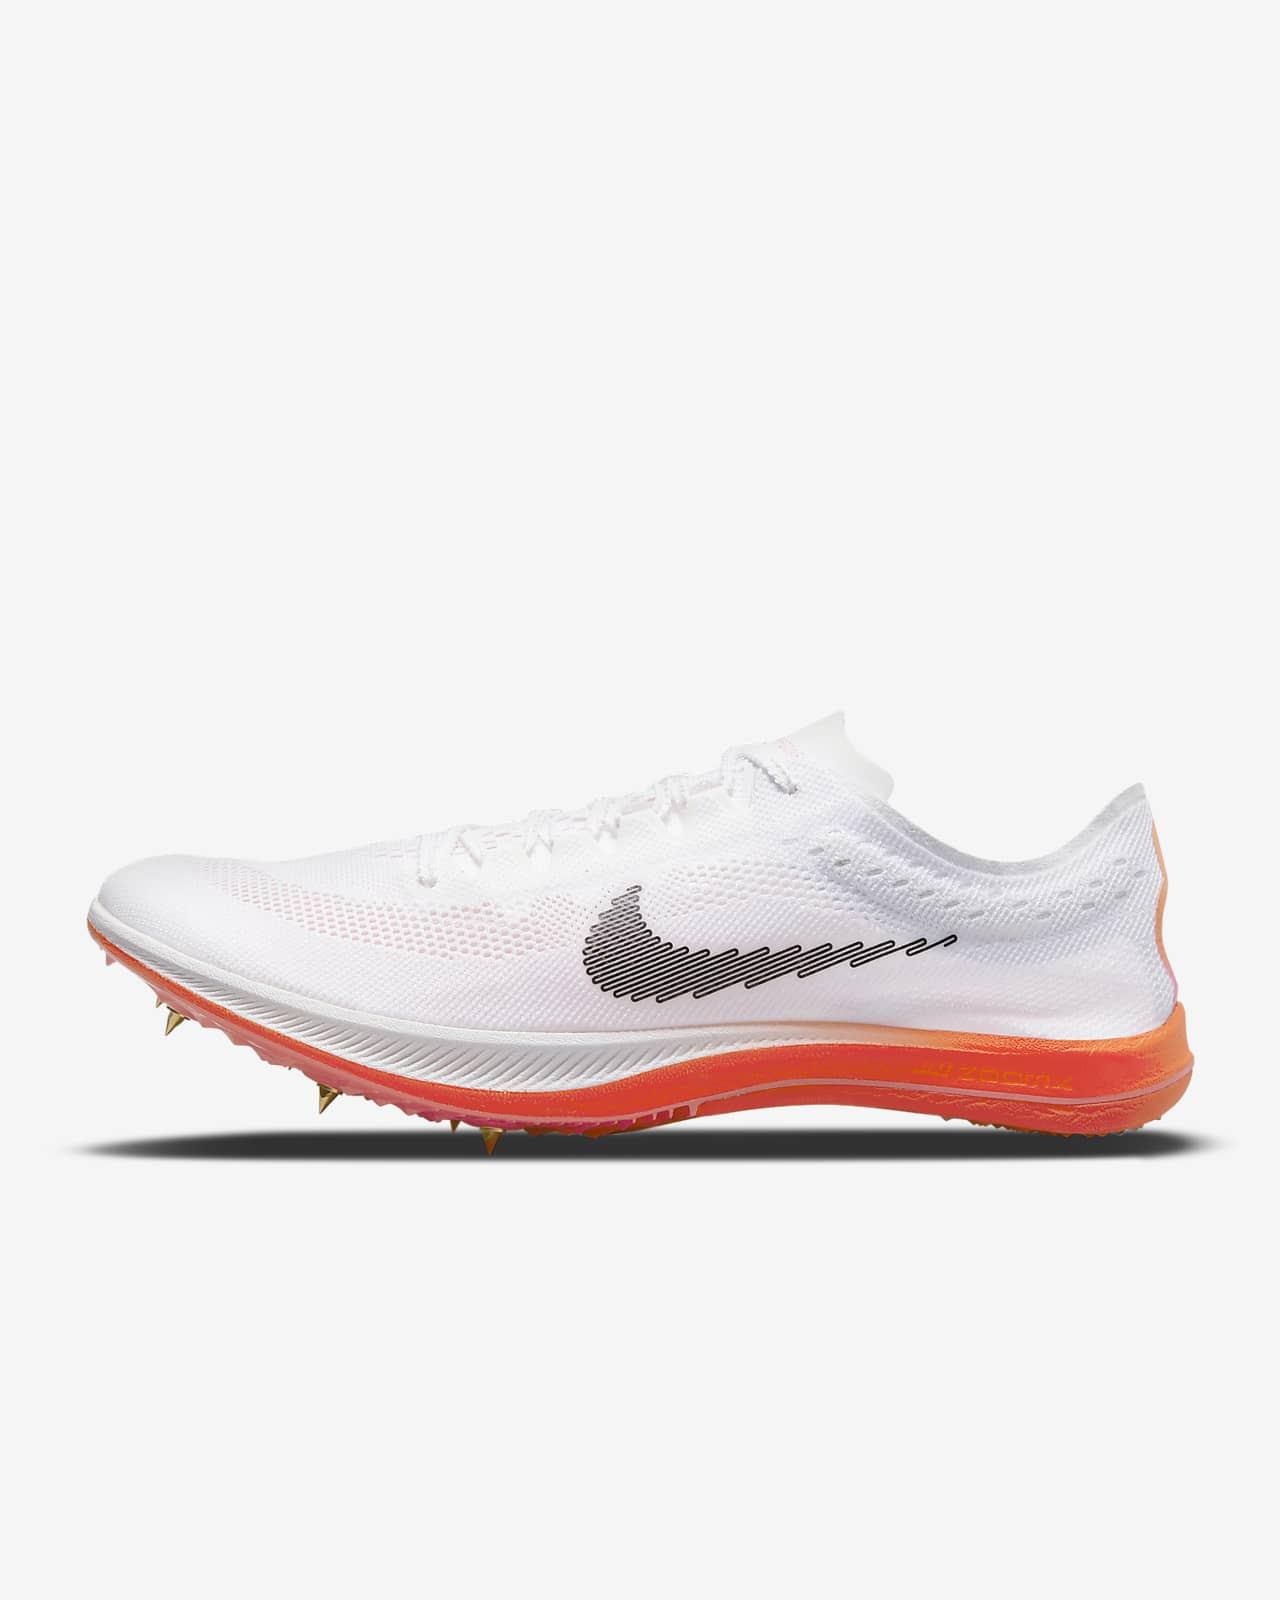 Nike ZoomX Dragonfly Track & Field Distance Spikes